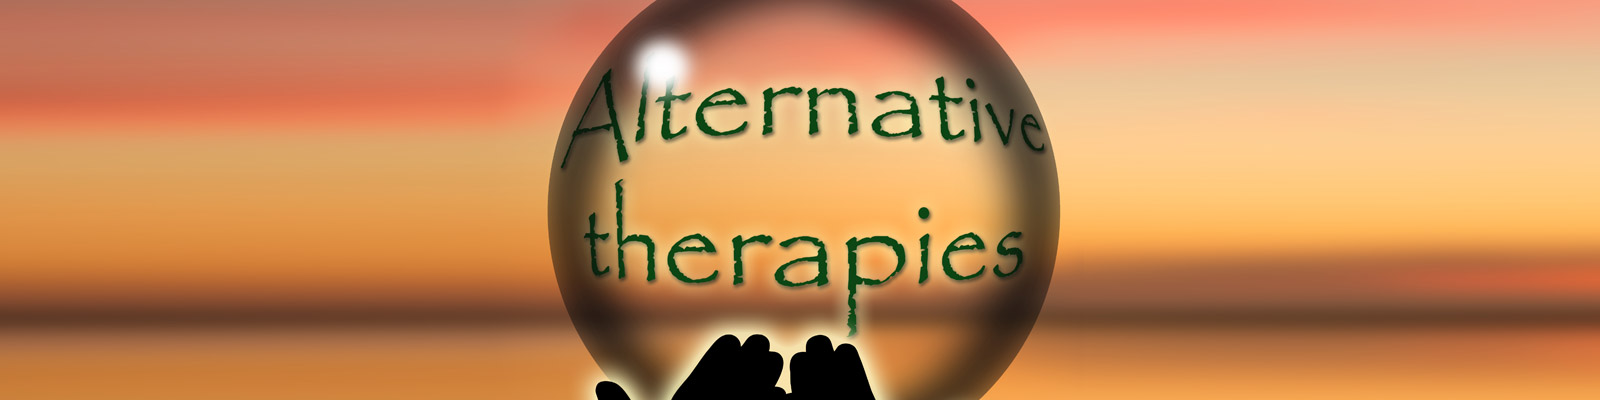 Schlafstörung Alternative Therapien